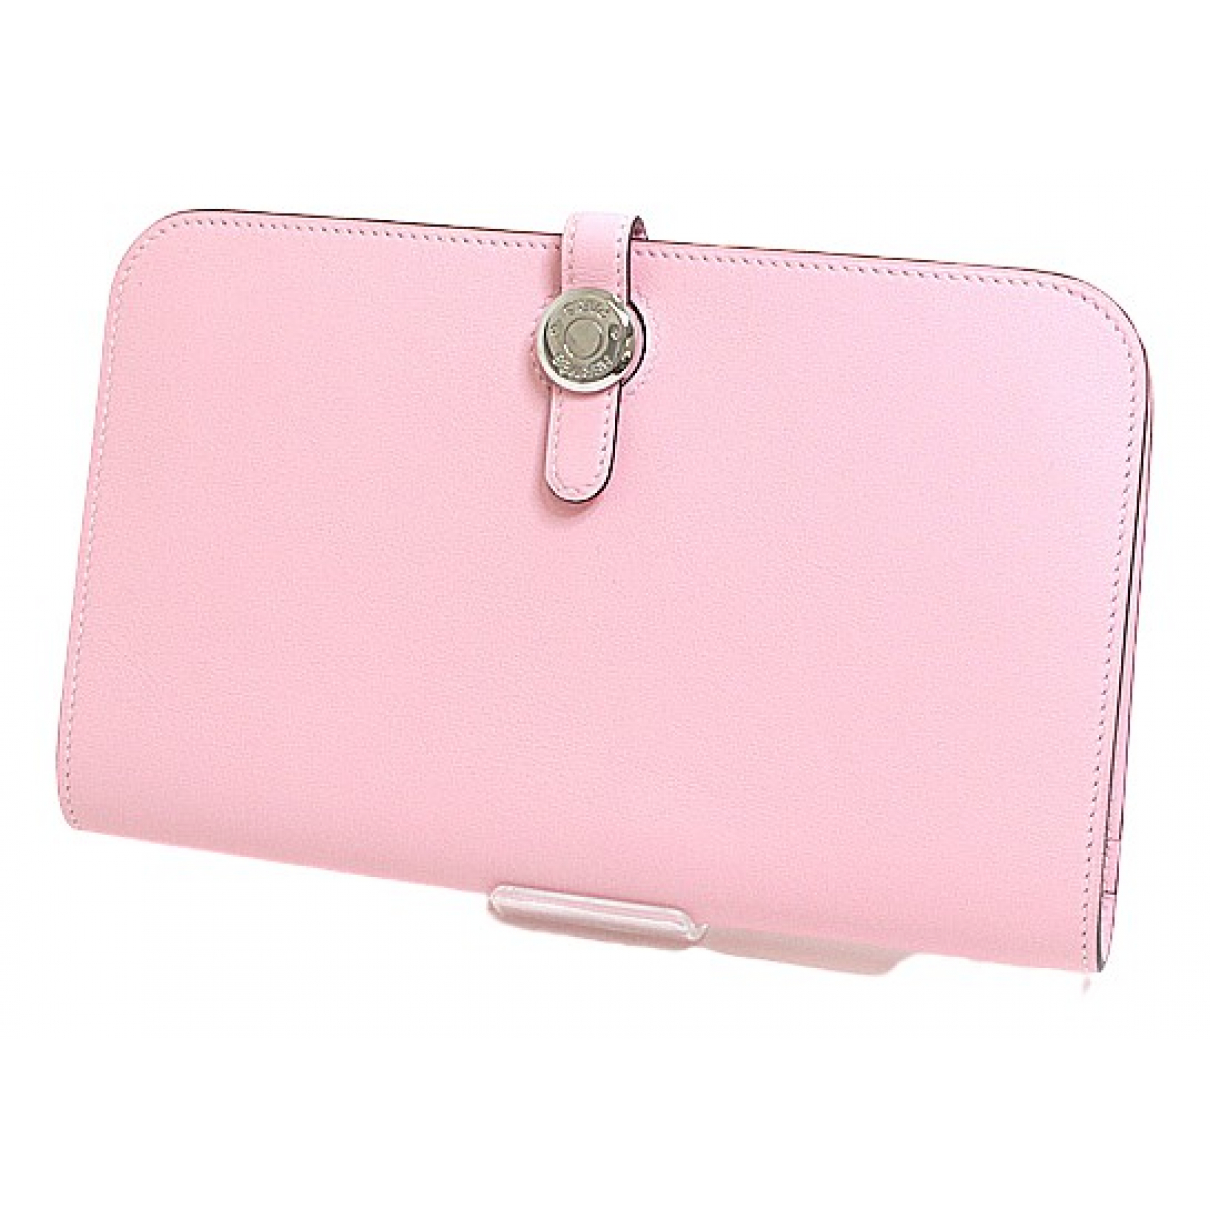 Hermès Dogon Pink Leather wallet for Women N